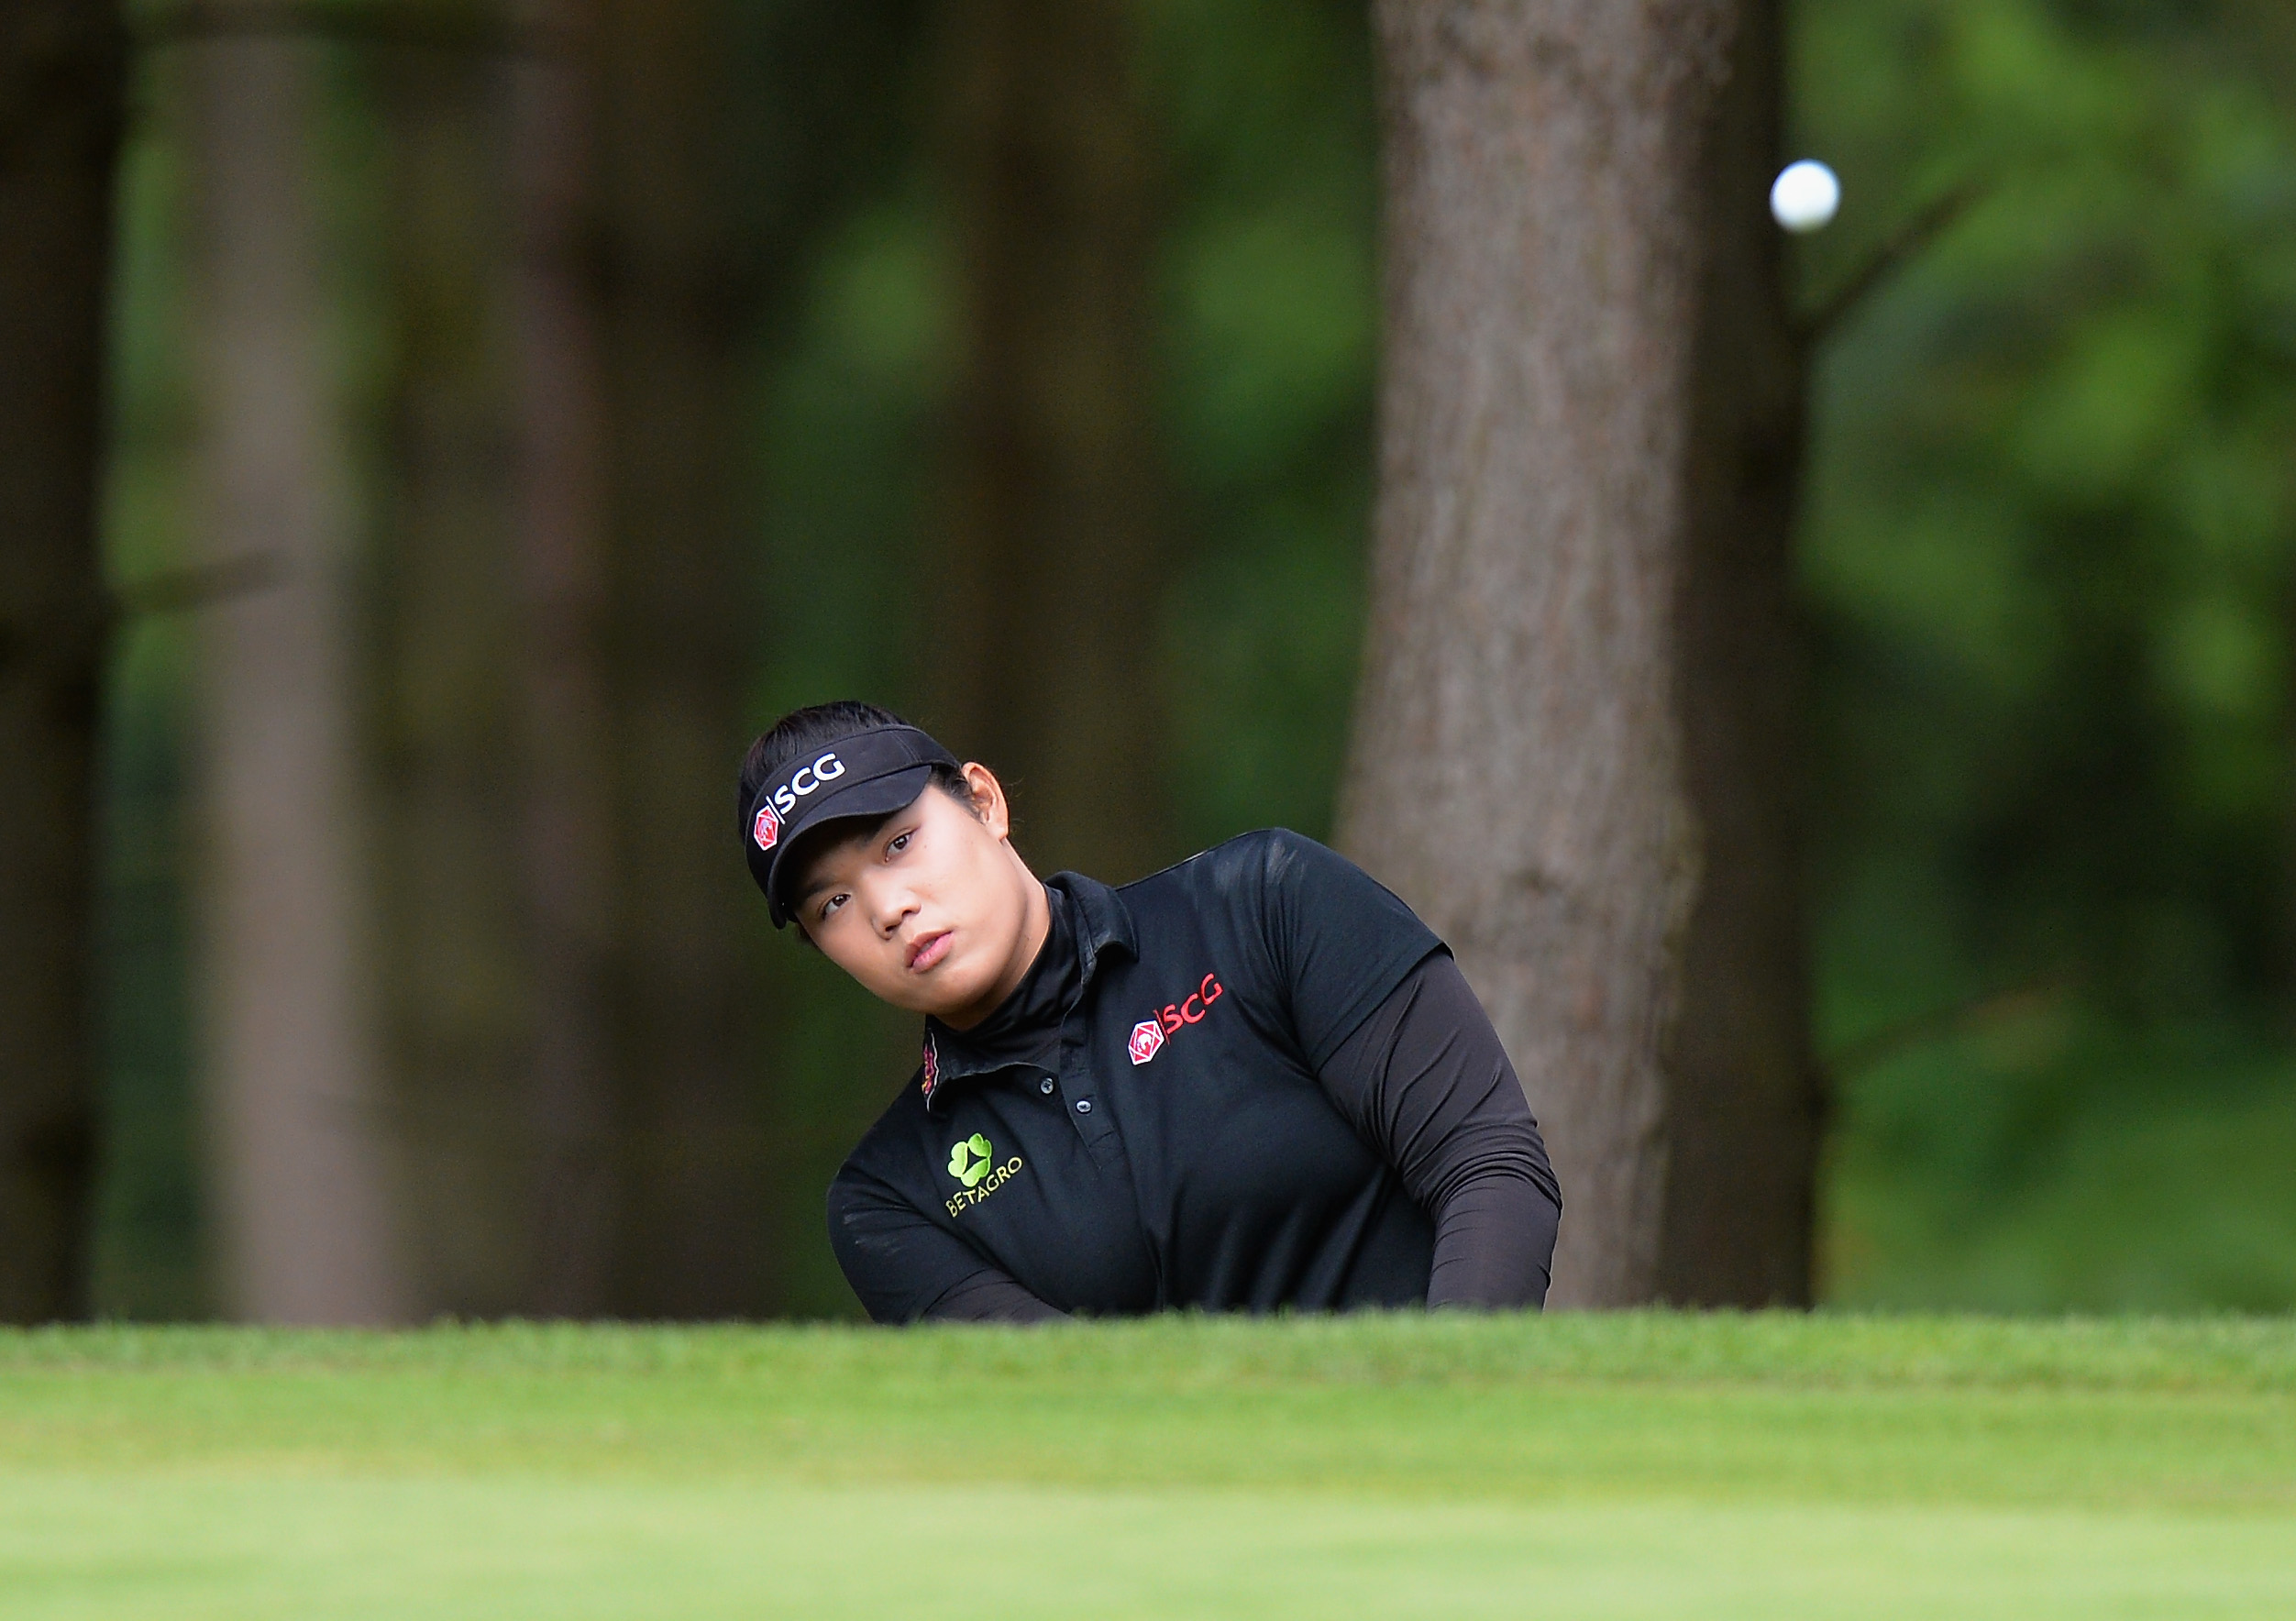 Ariya Jutanugarn of Thailand chips on to the 13th green during the Ricoh Women's British Open. (Getty Images)